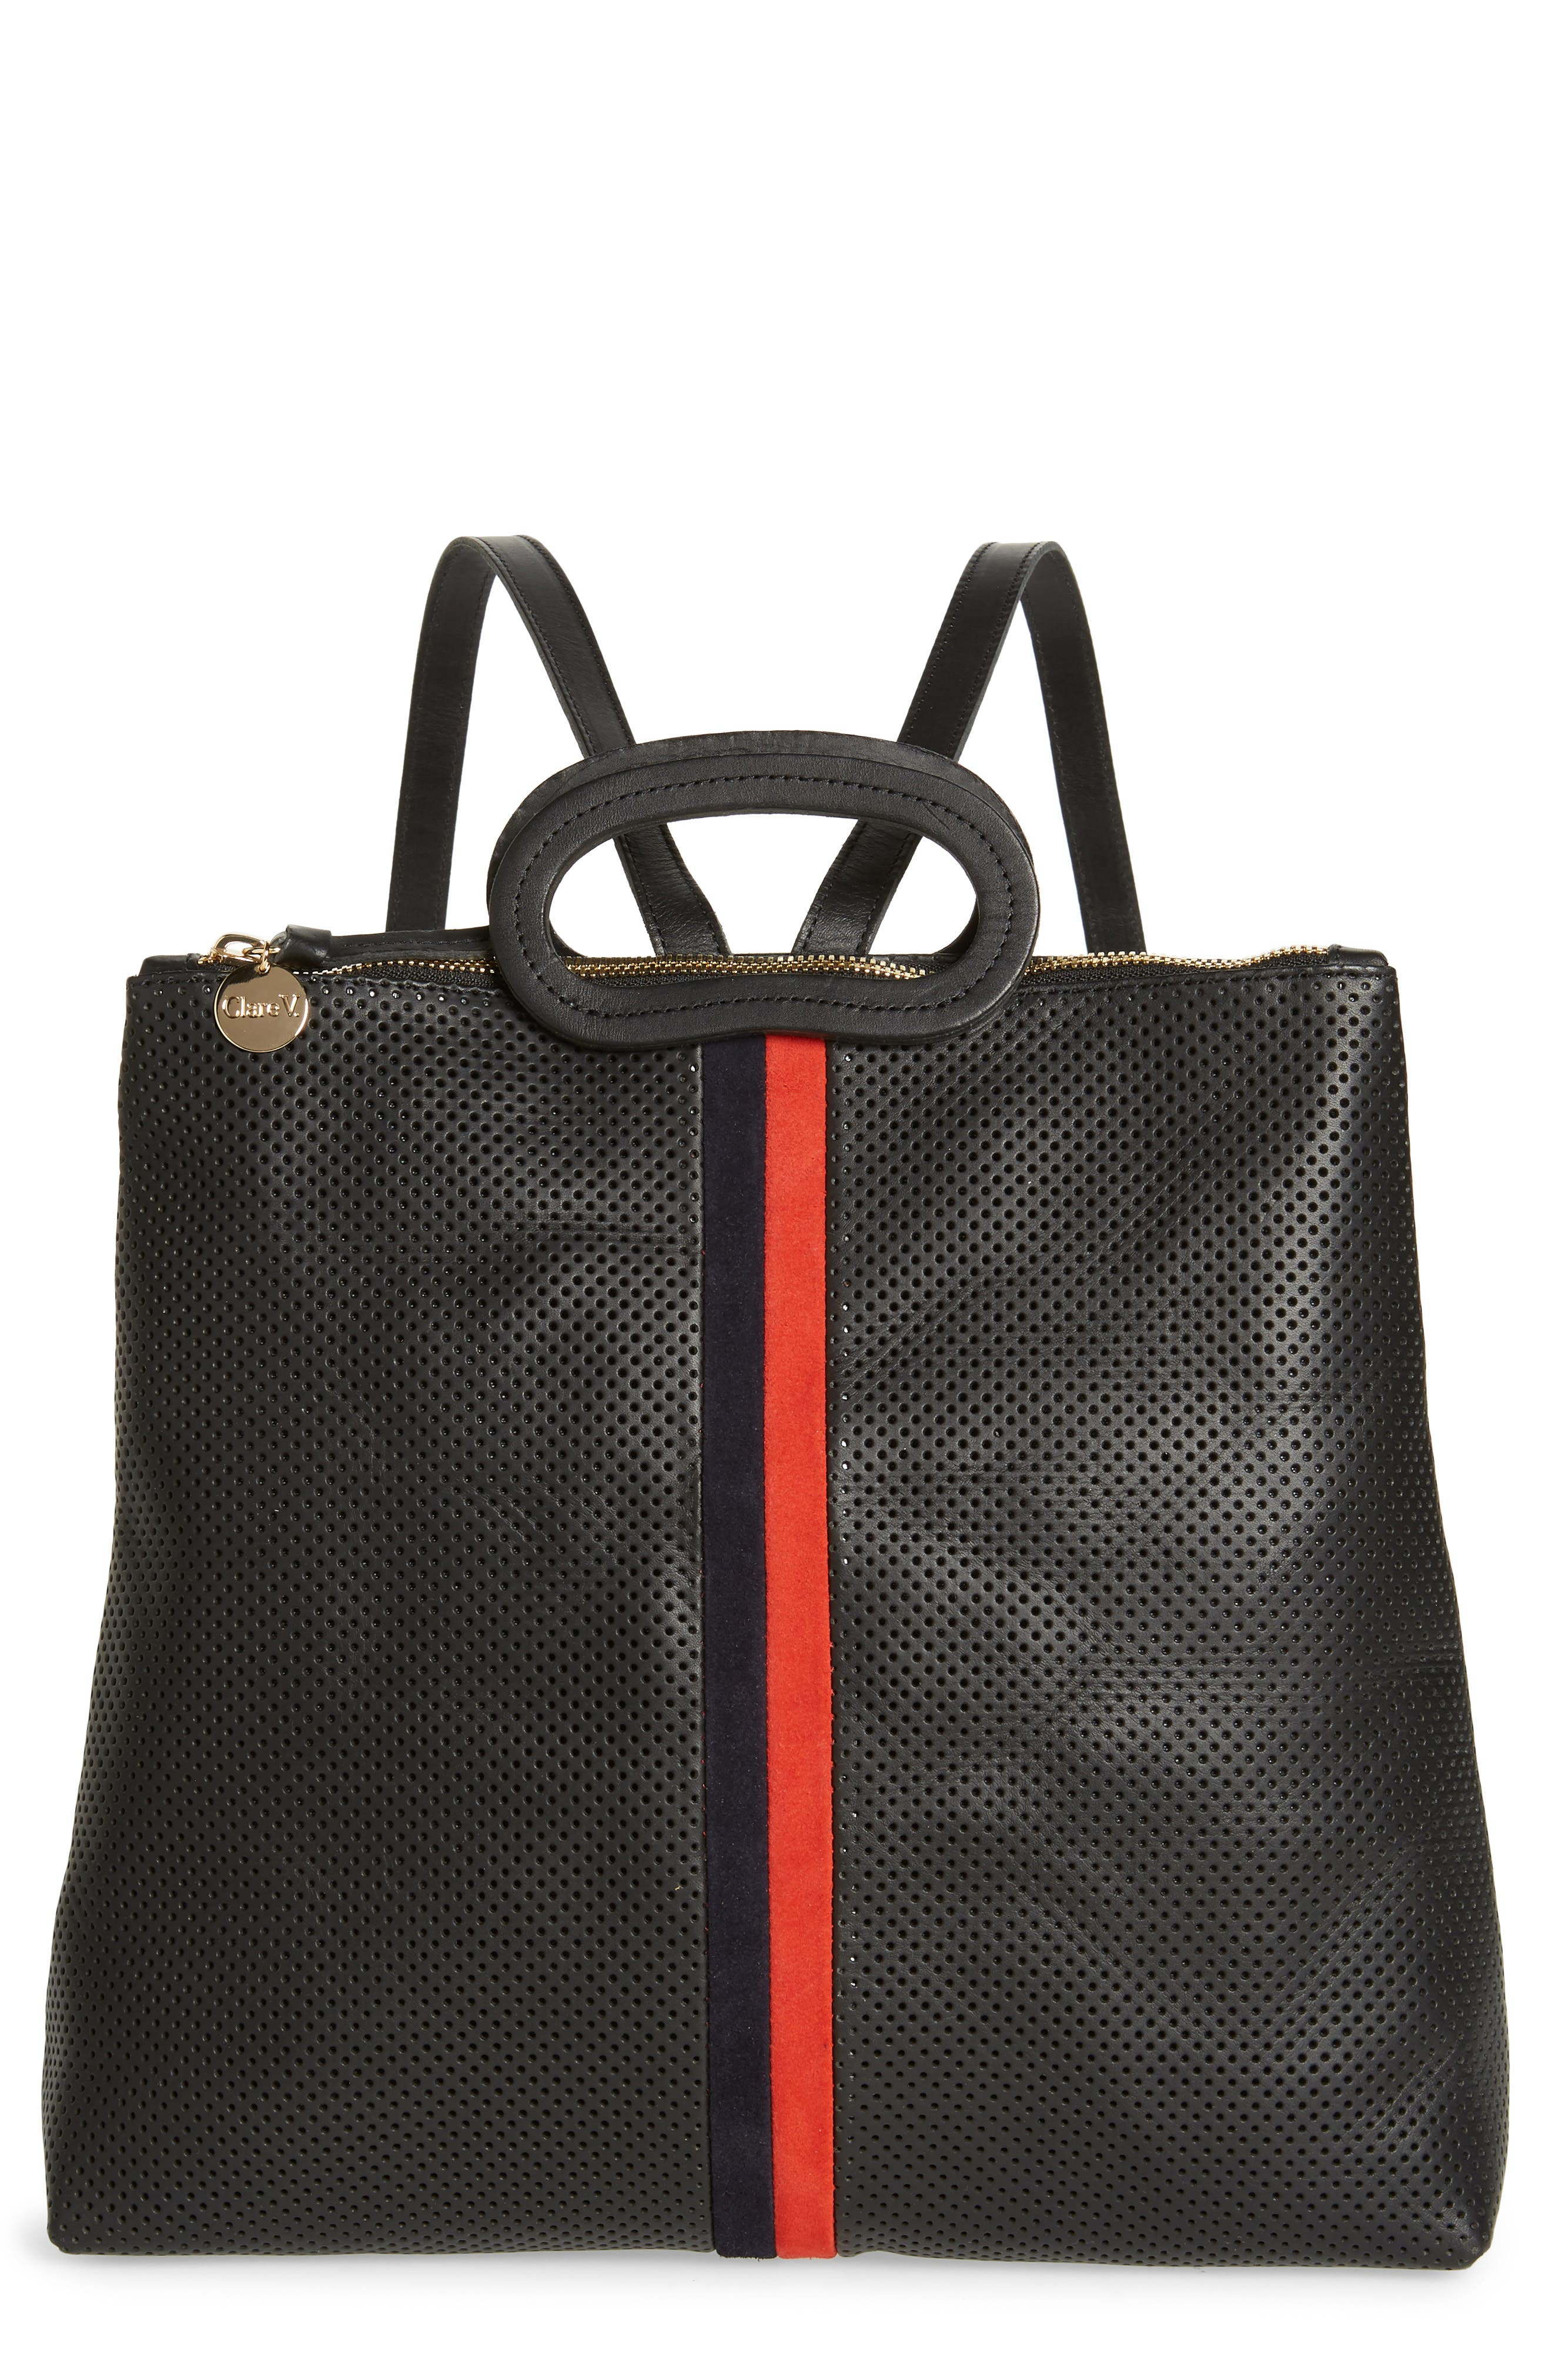 Marcelle Perforated Leather Backpack,                         Main,                         color, BLACK PERF WITH NAVY/ RED